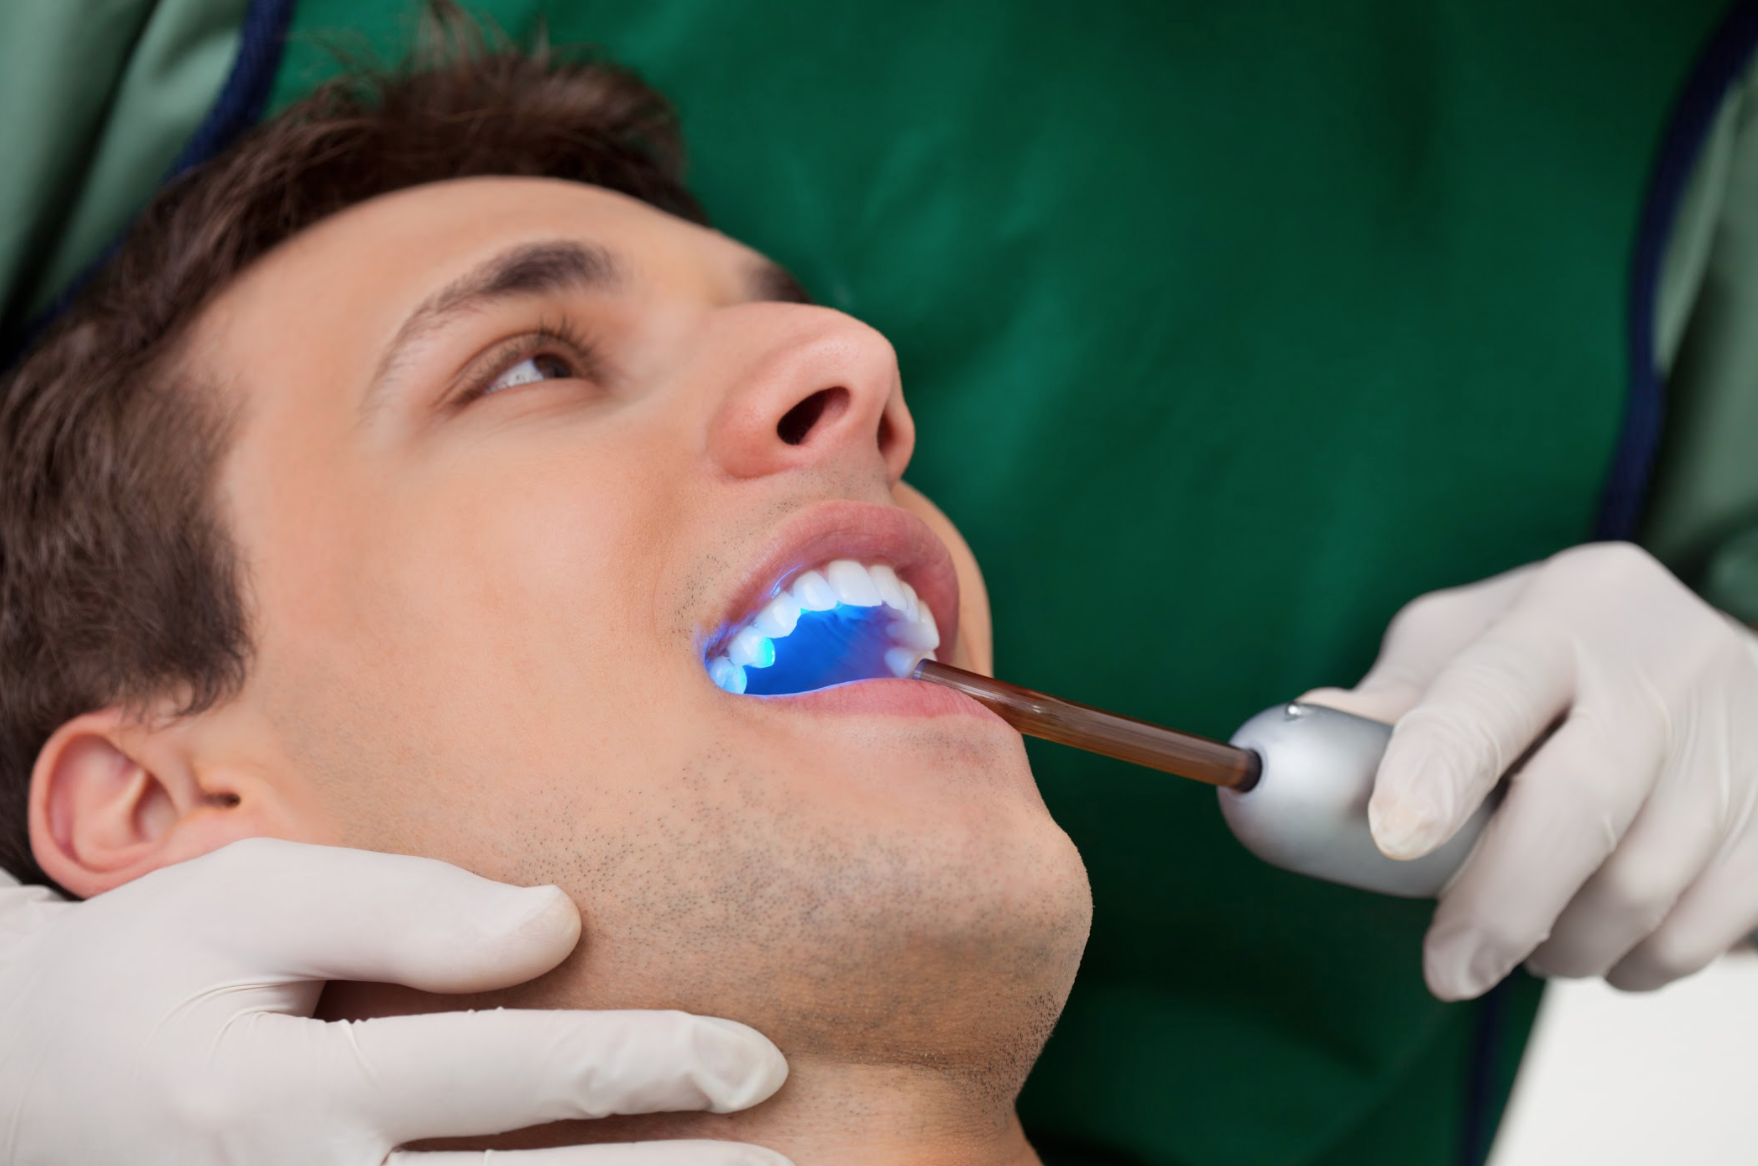 crowns and tooth fillings